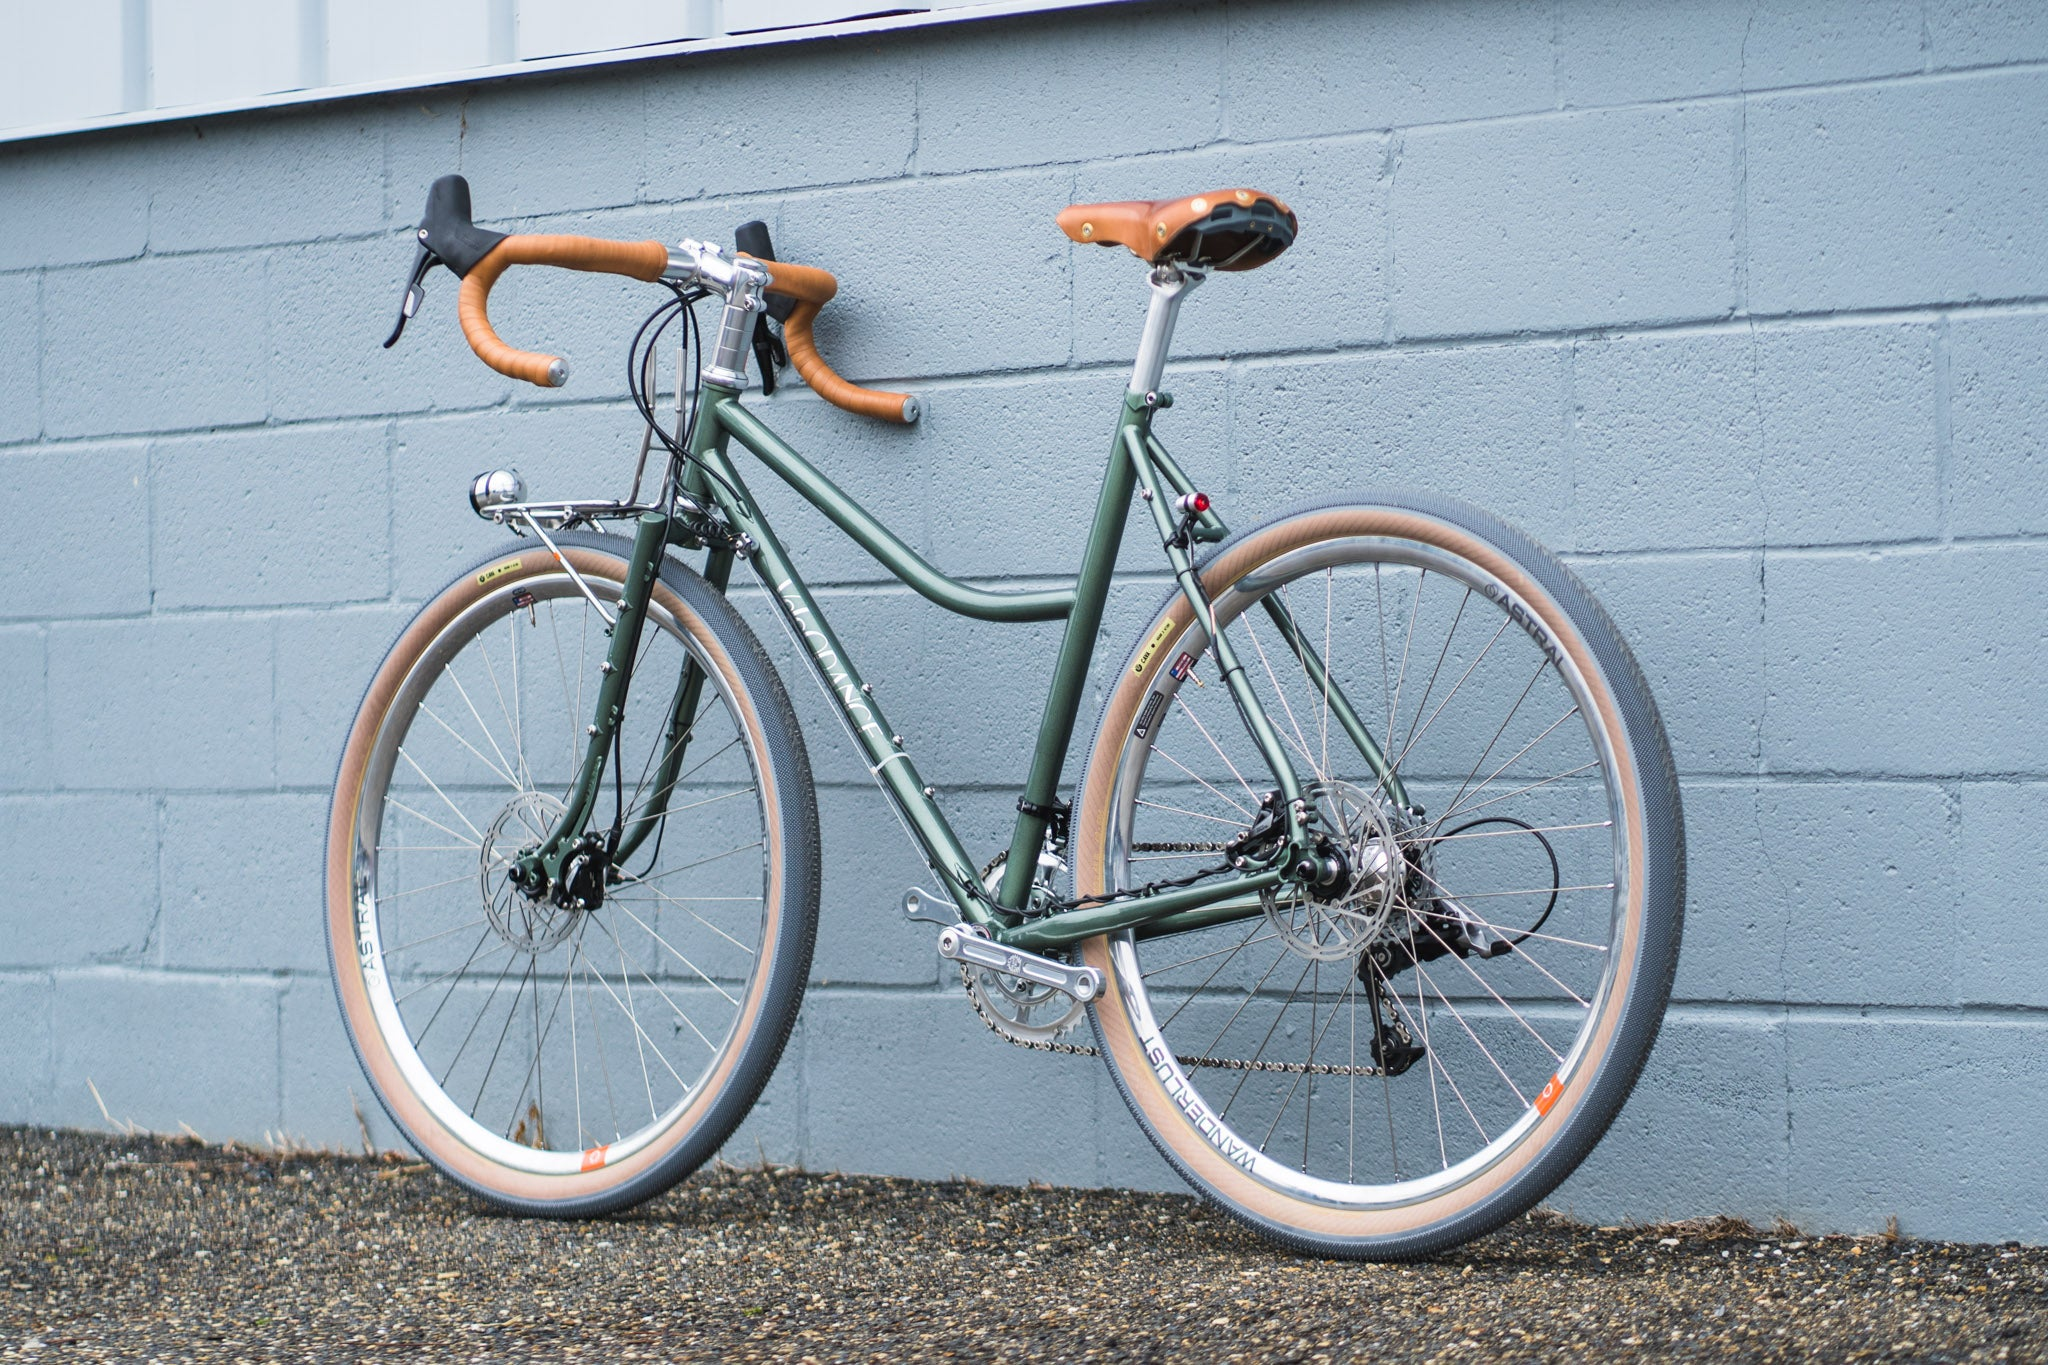 Melissa's Sport Touring Low Kicker Polyvalent with Dynamo Lighting and Astral Wanderlust Rims